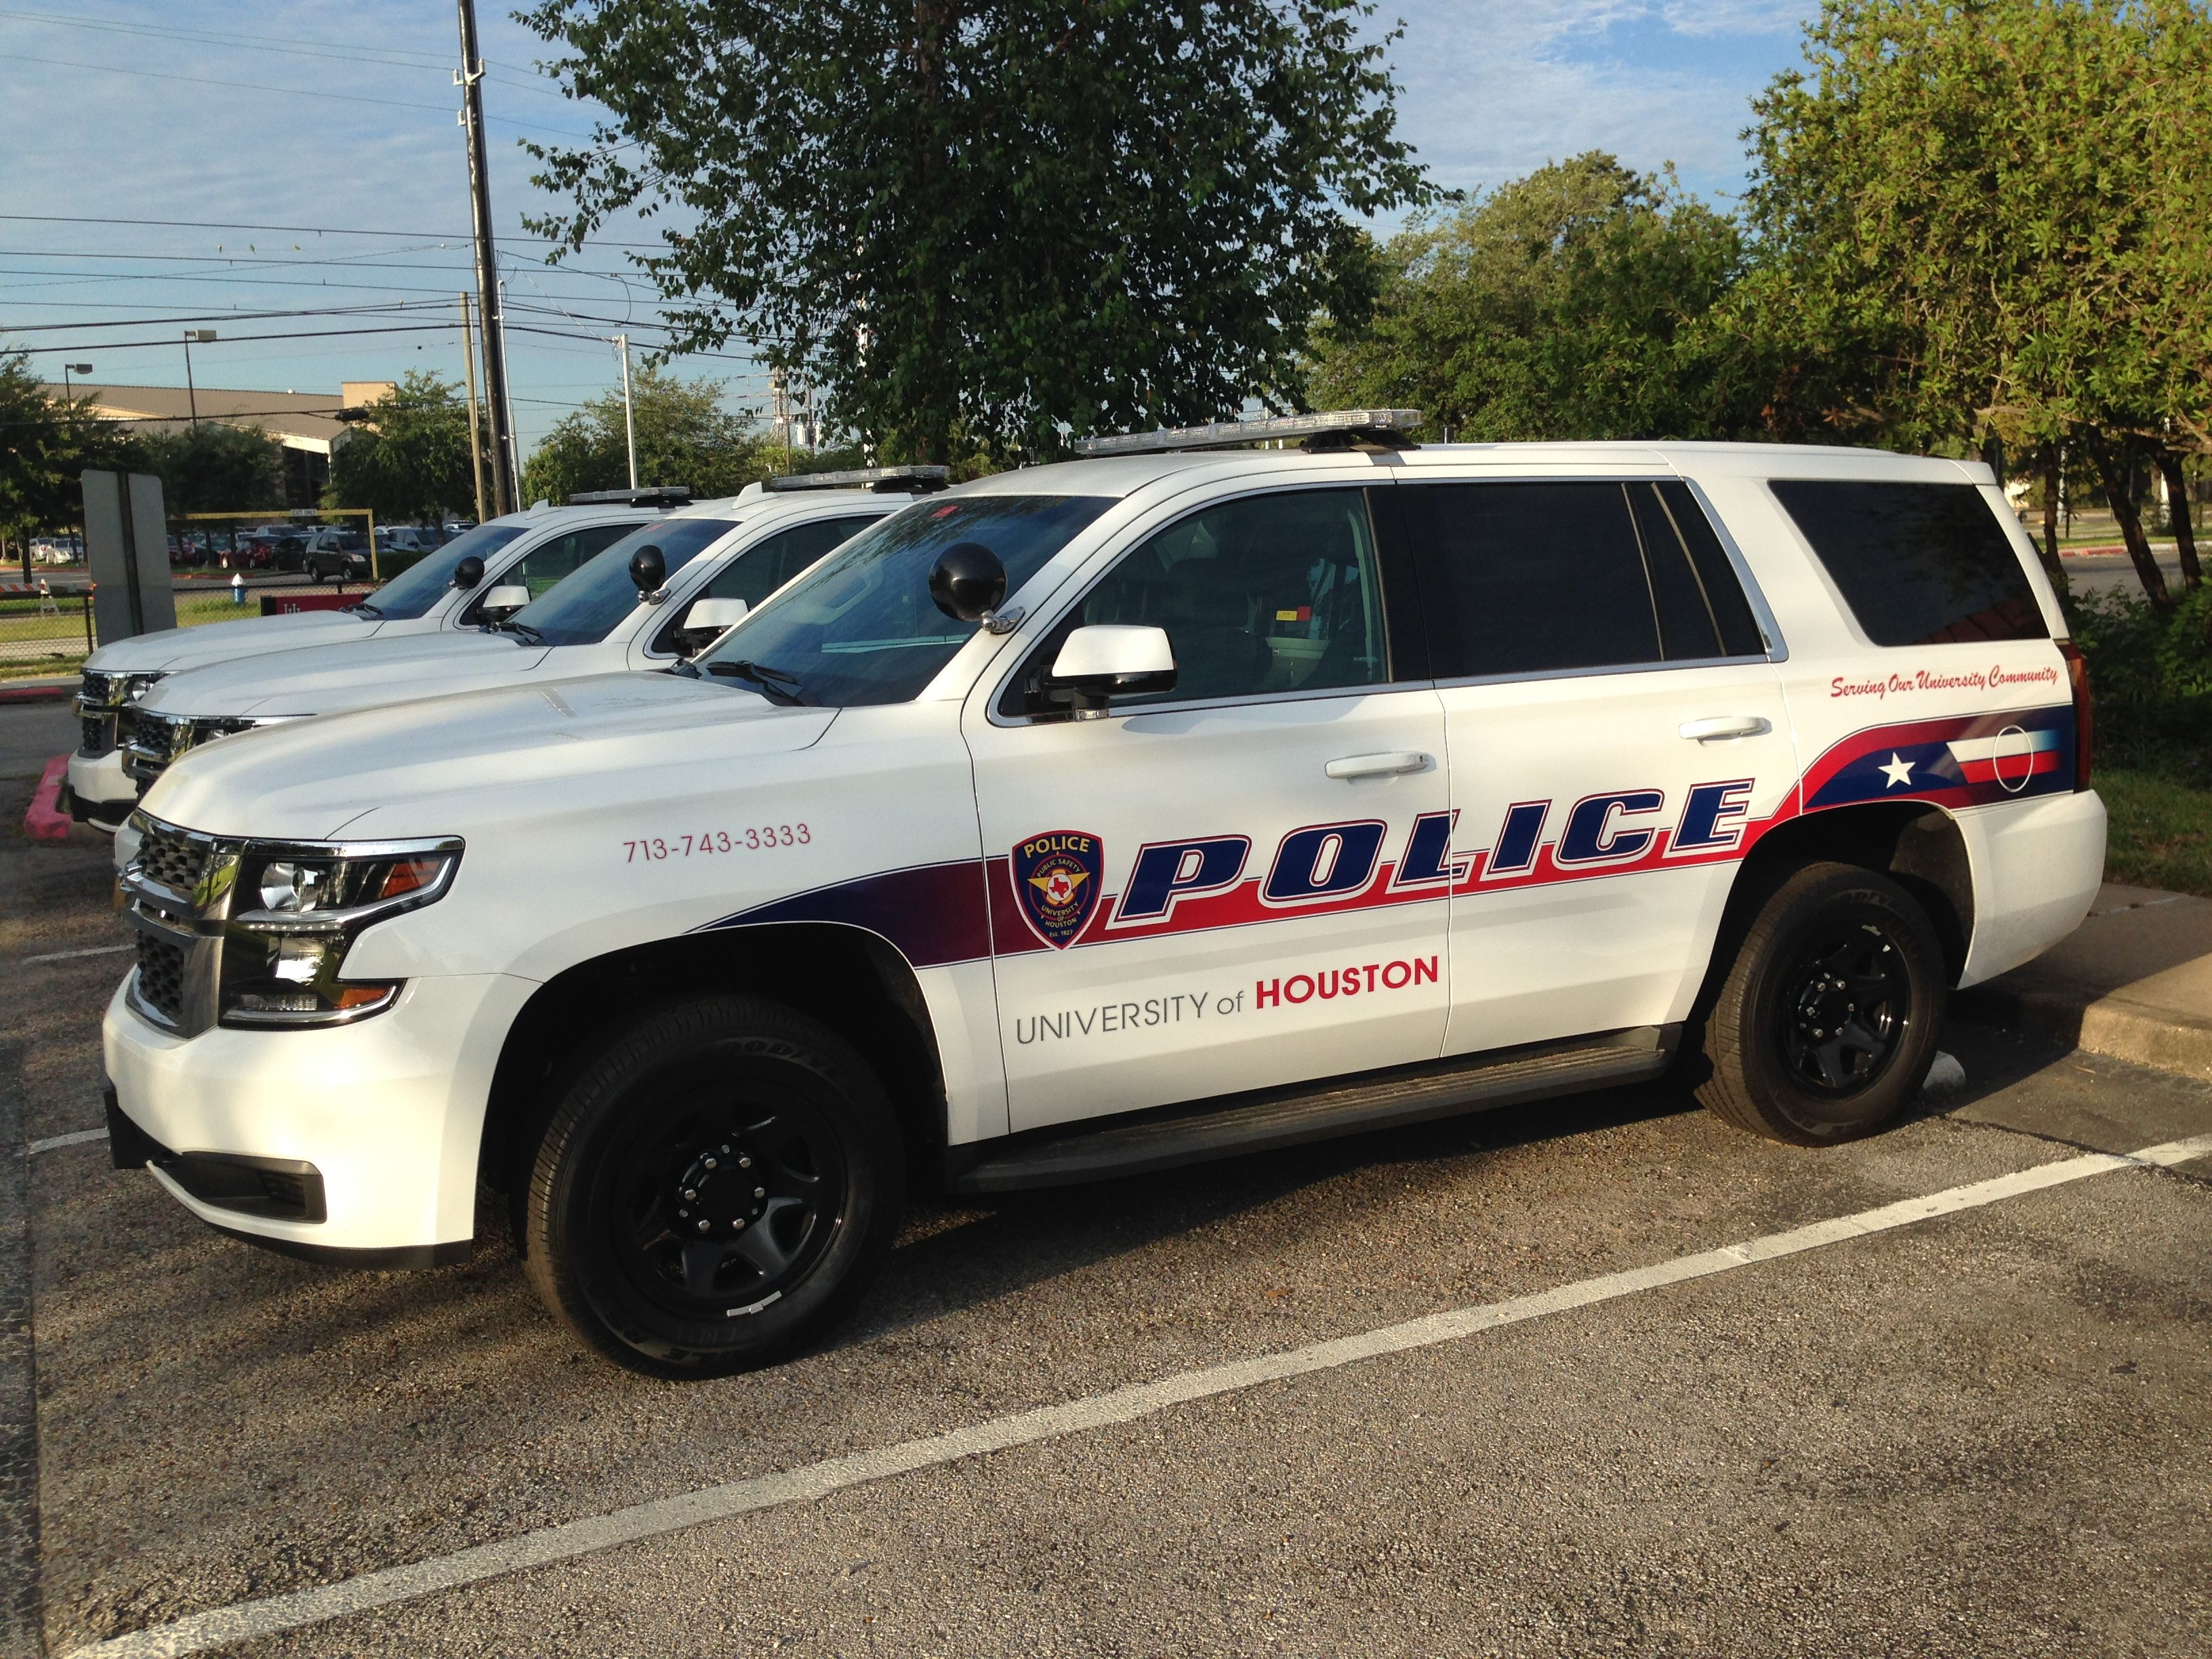 University Of Houston Police Department Chevy Tahoe Houston Police Houston Police Department Police Cars